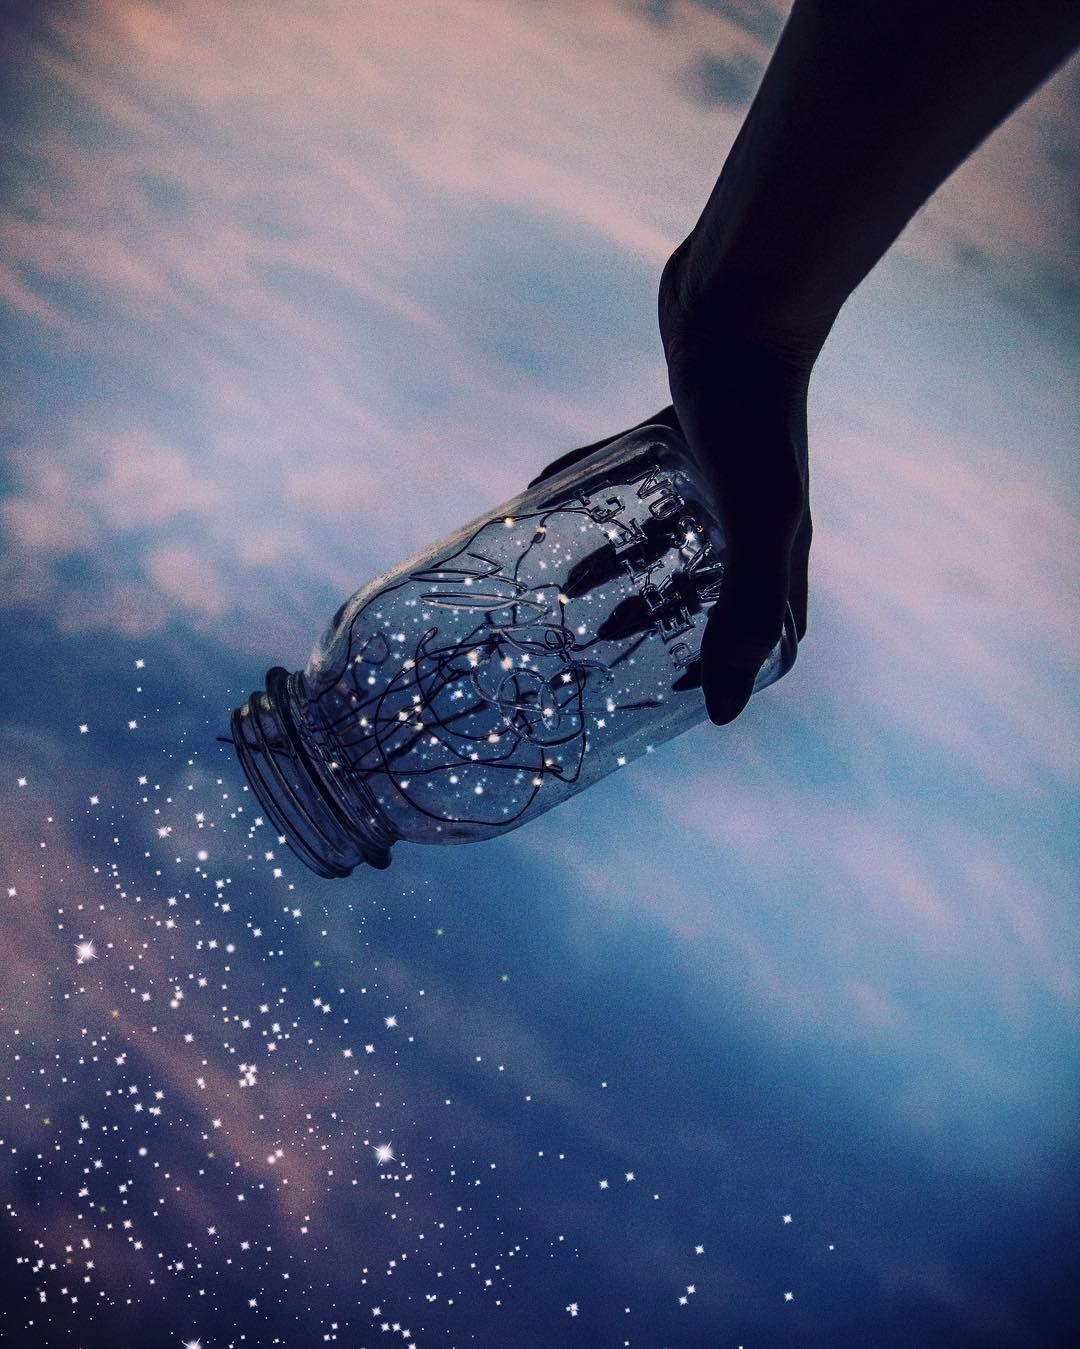 Collecting An Entire Universe Of Dreams Inside A Transparent